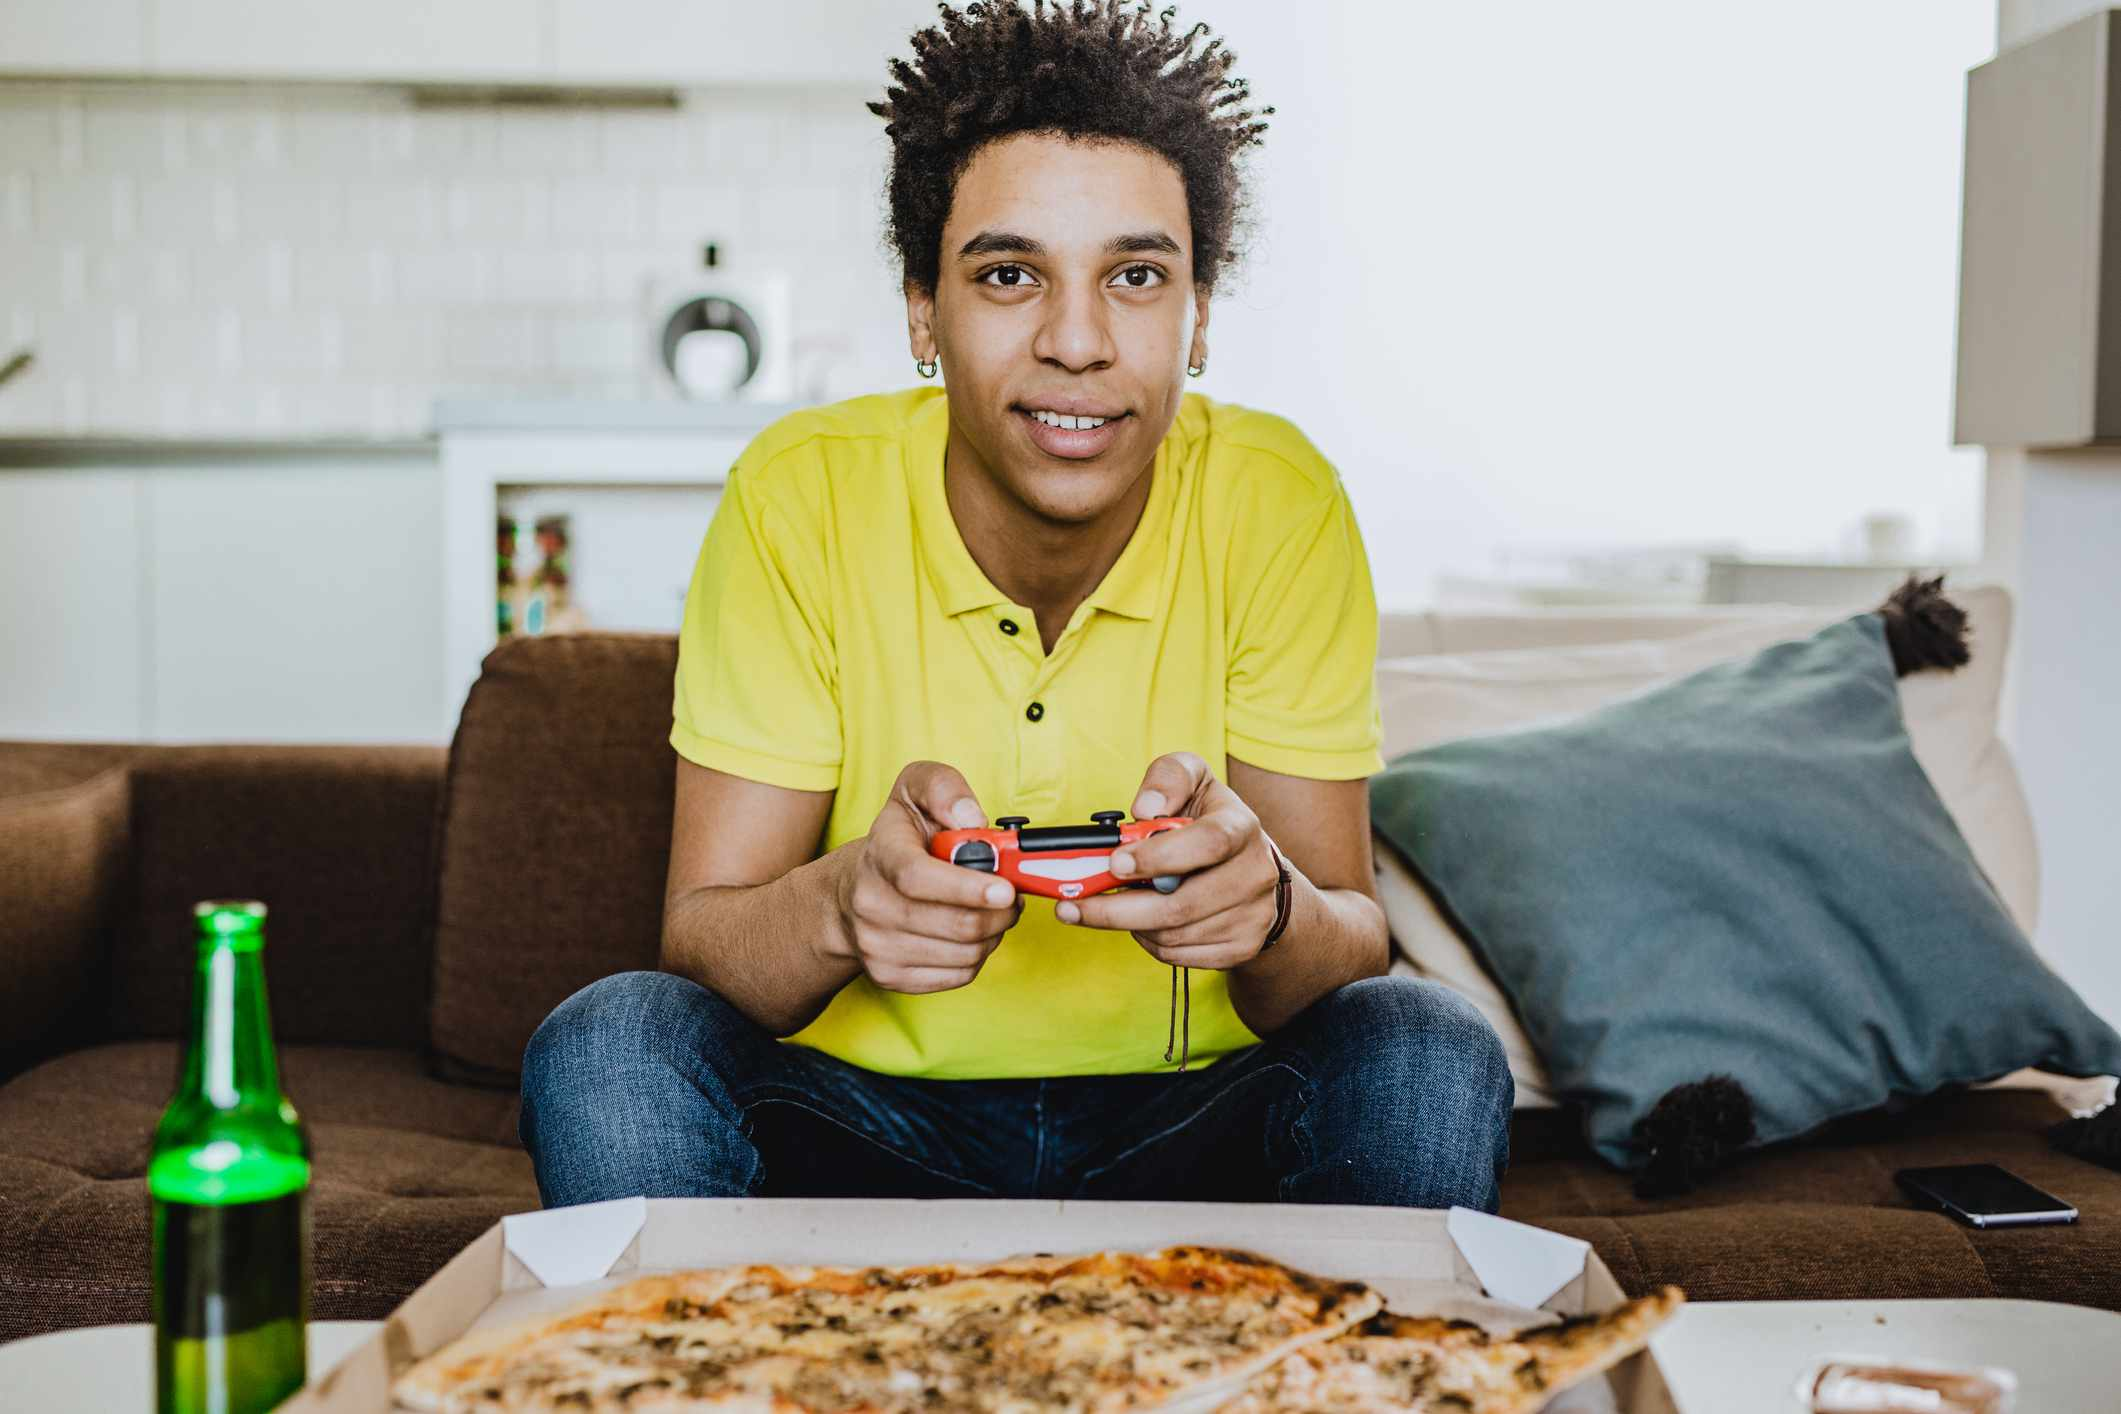 A young adult playing video gamers over a pizza and a drink.